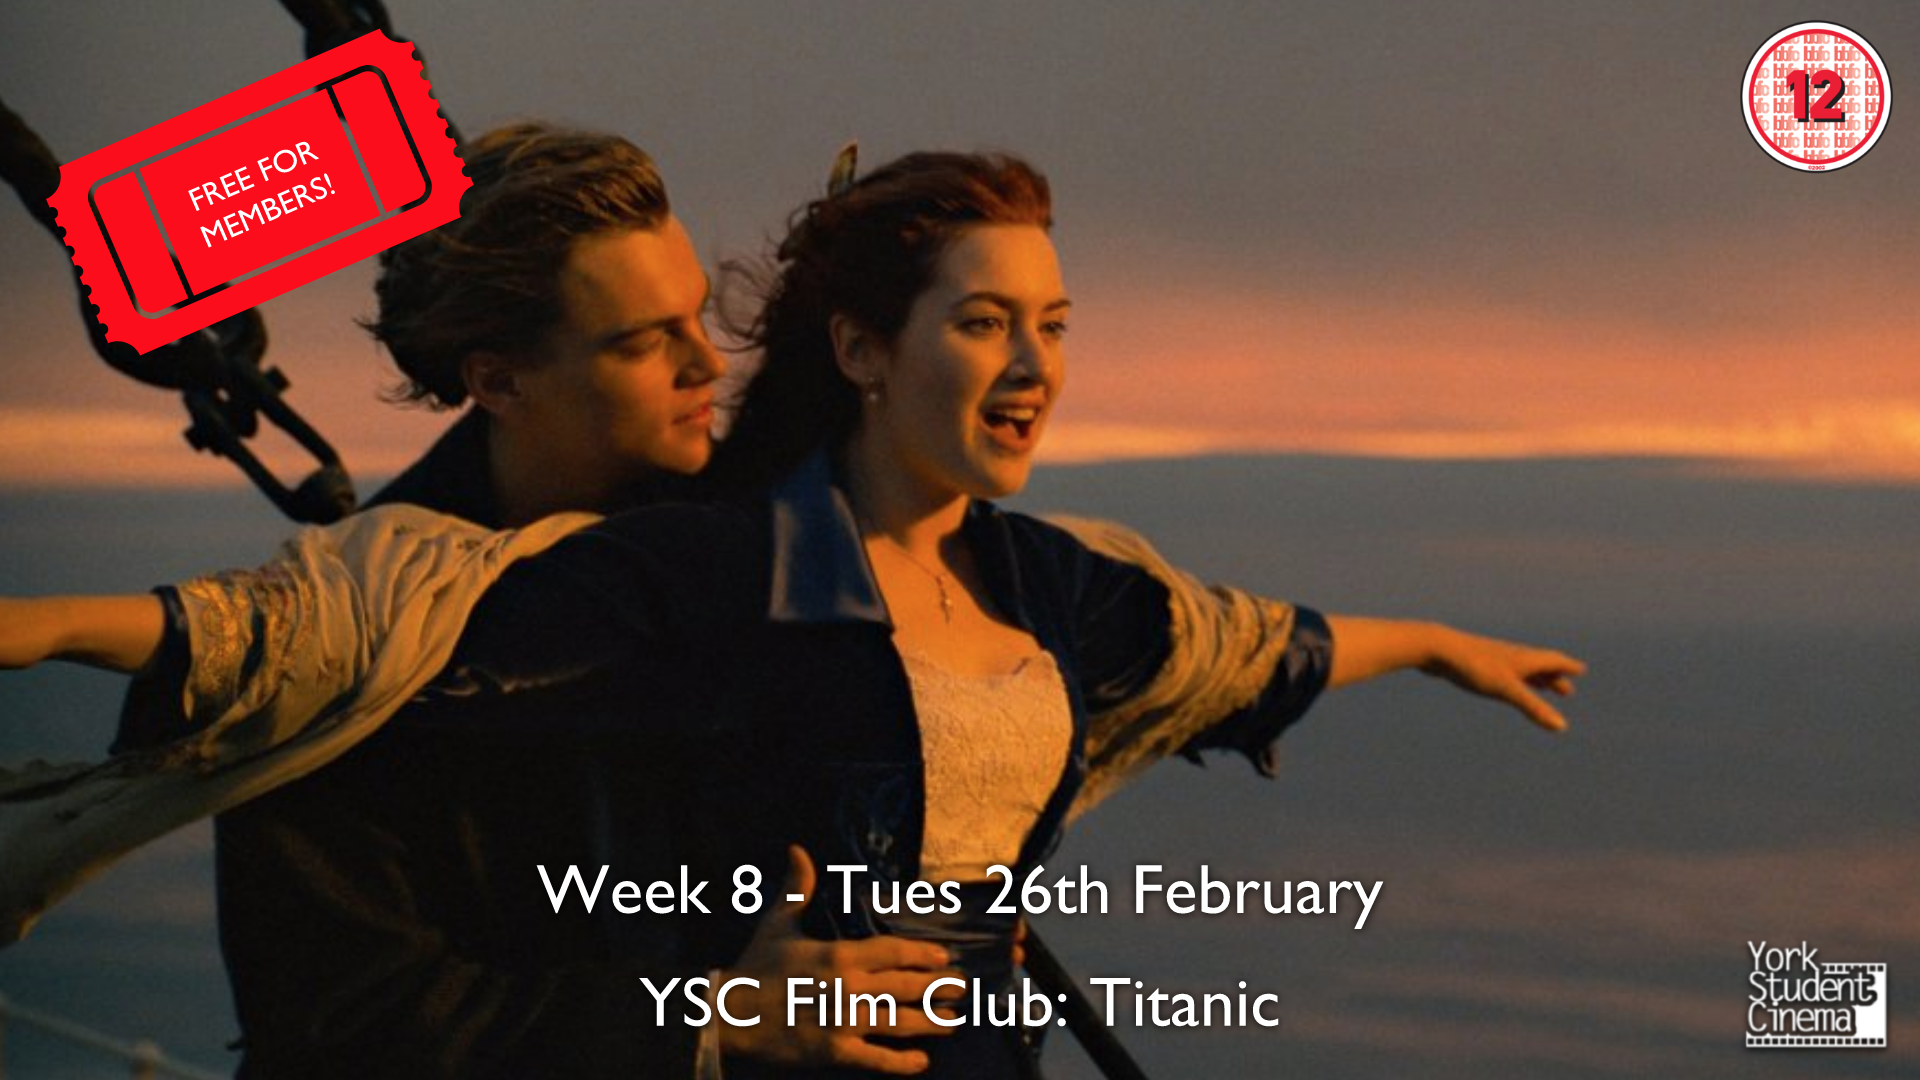 YSC Film Club: Titanic